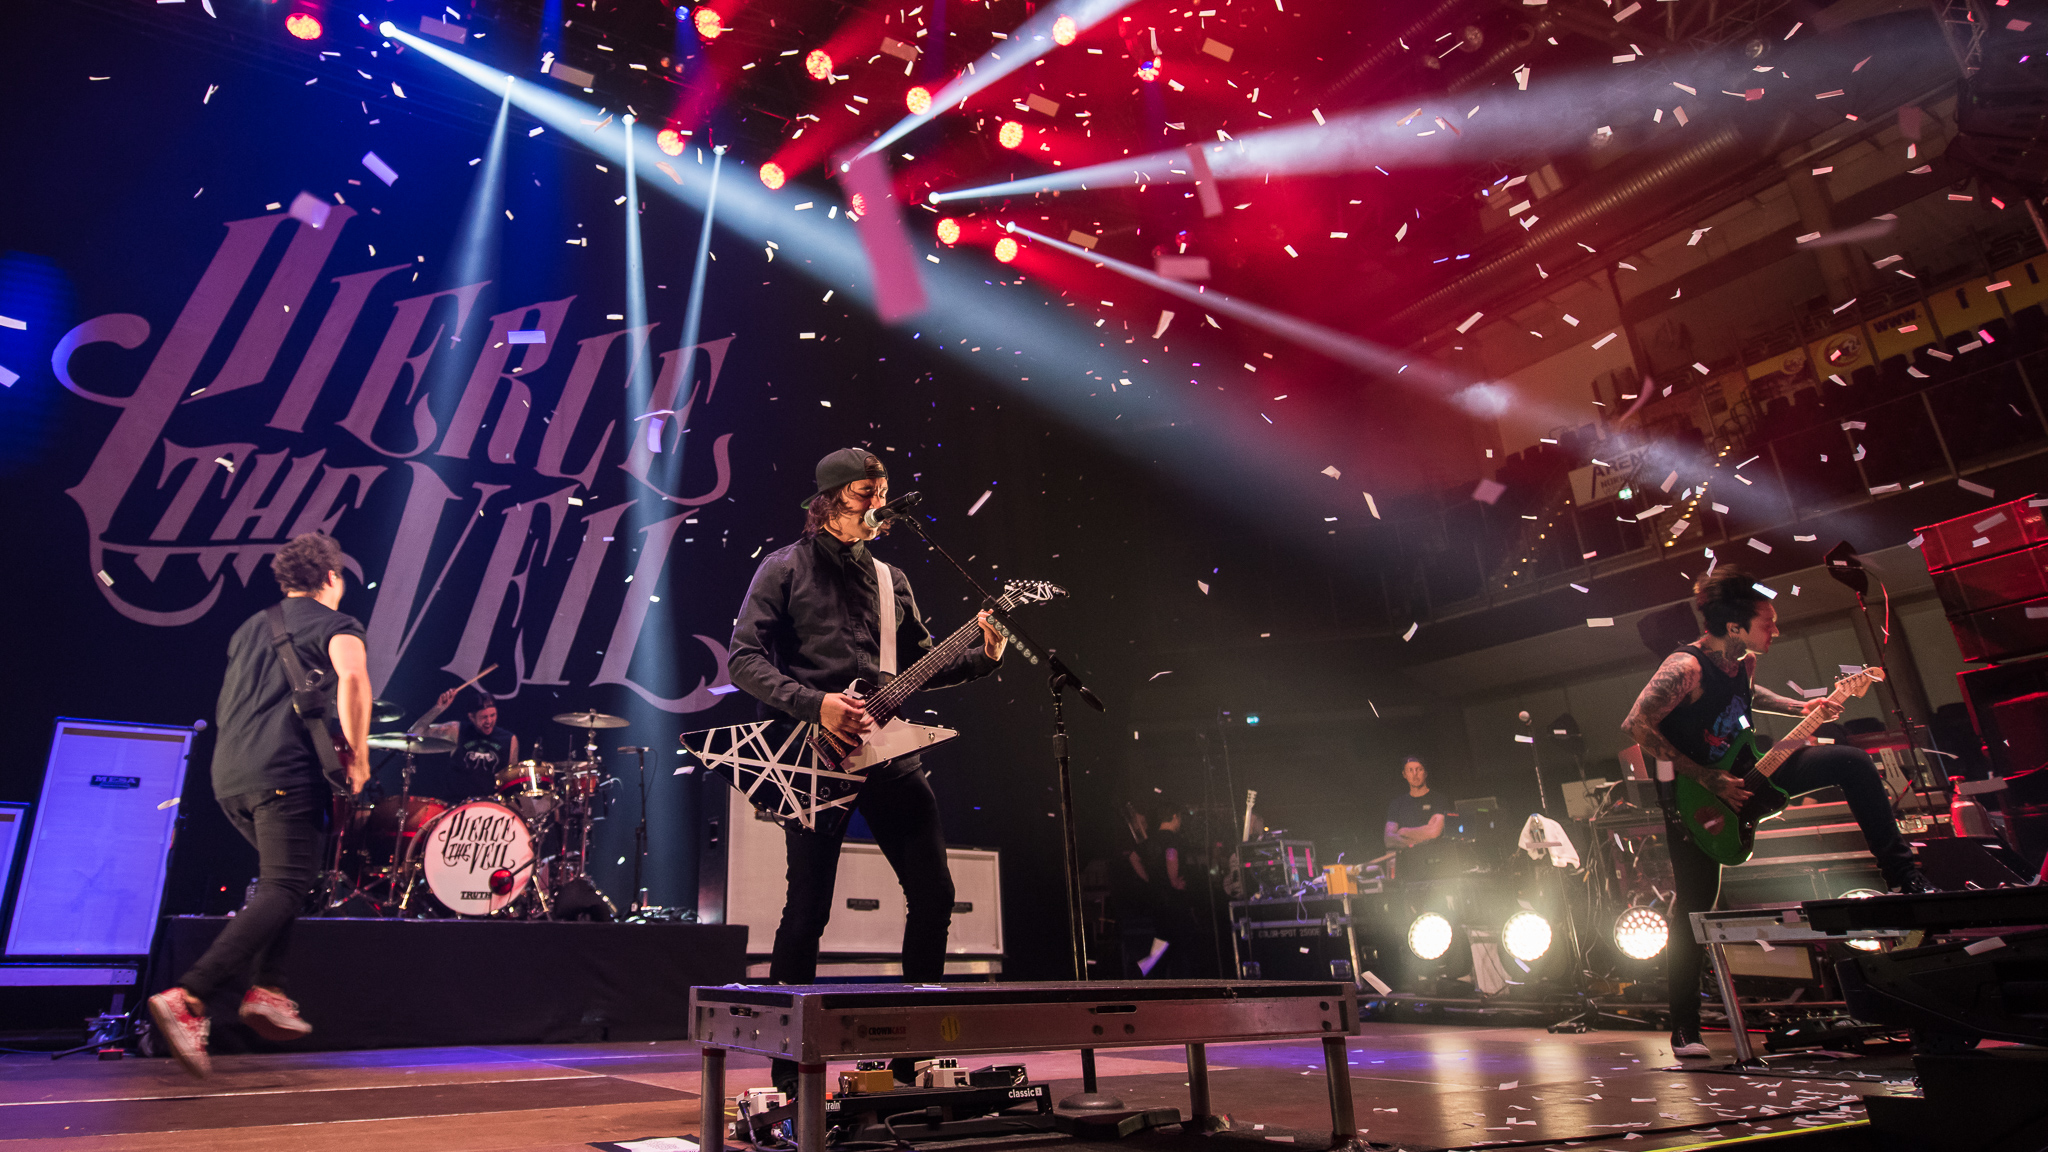 fca84739979074 2017 RiP - Pierce The Veil - by 2eight - 8SC8582.jpg